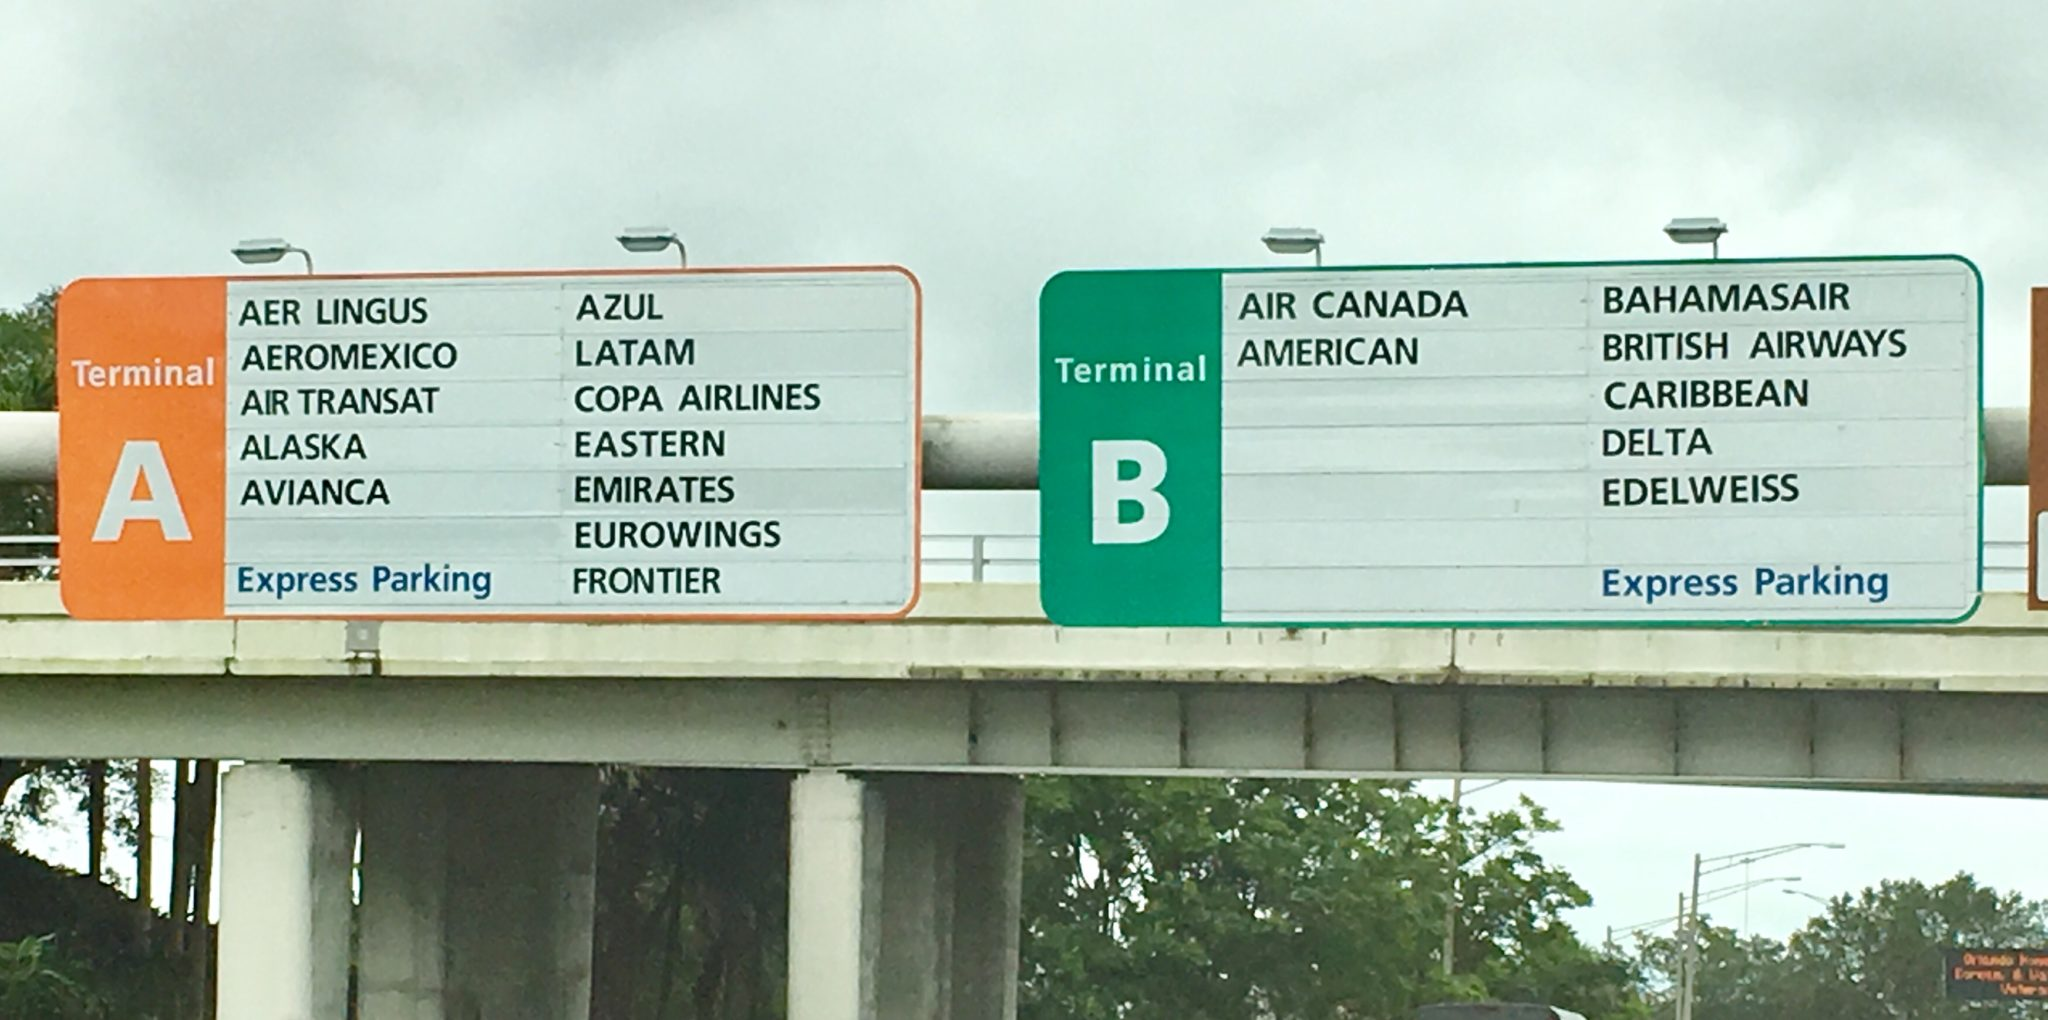 List of Airlines at Orlando Airport